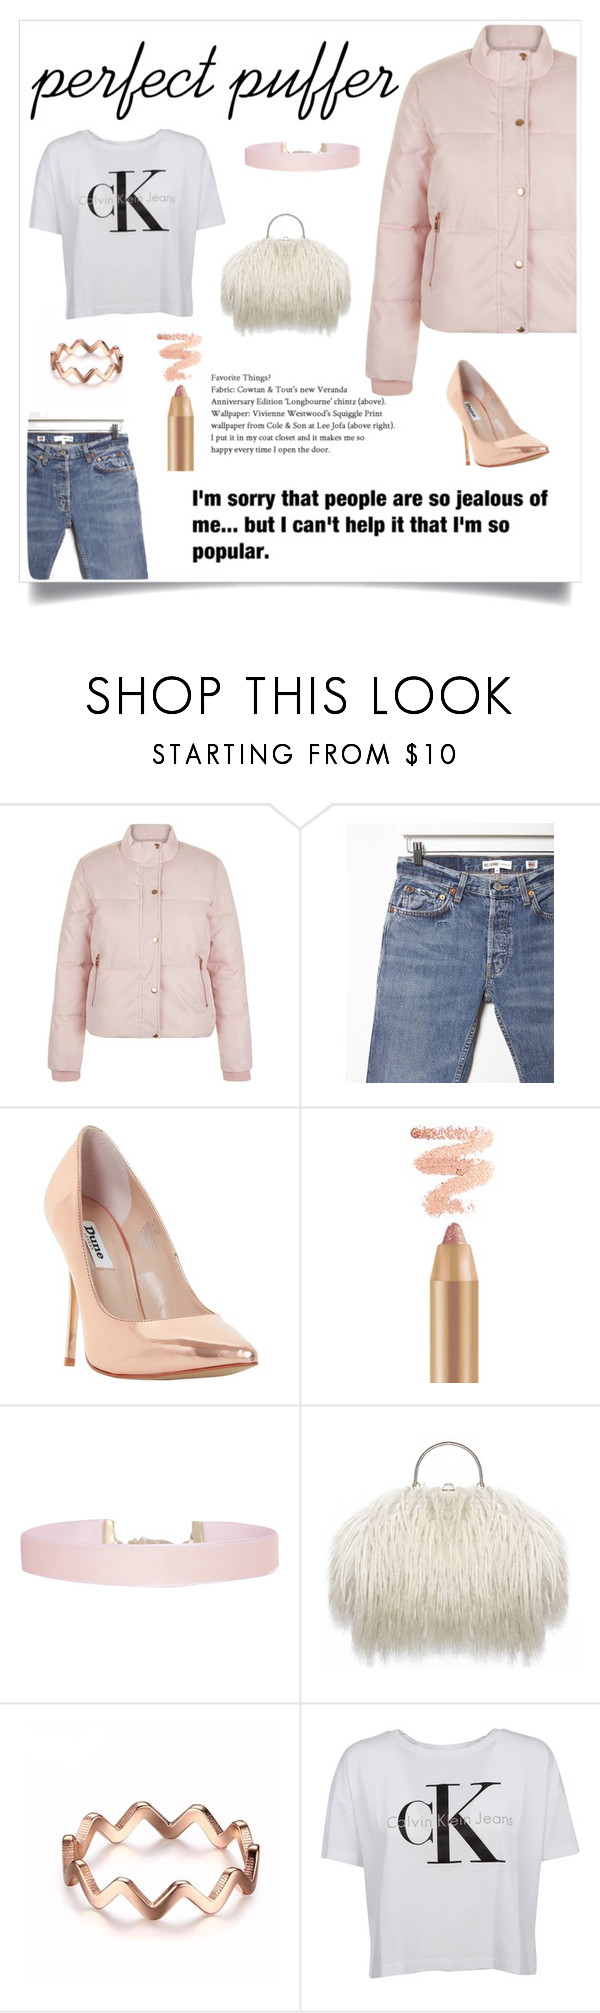 """""""Perfect Puffer Jacket!"""" by sarahemm ❤ liked on Polyvore featuring New Look, RE/DONE, Dune, Humble Chic and Calvin Klein"""